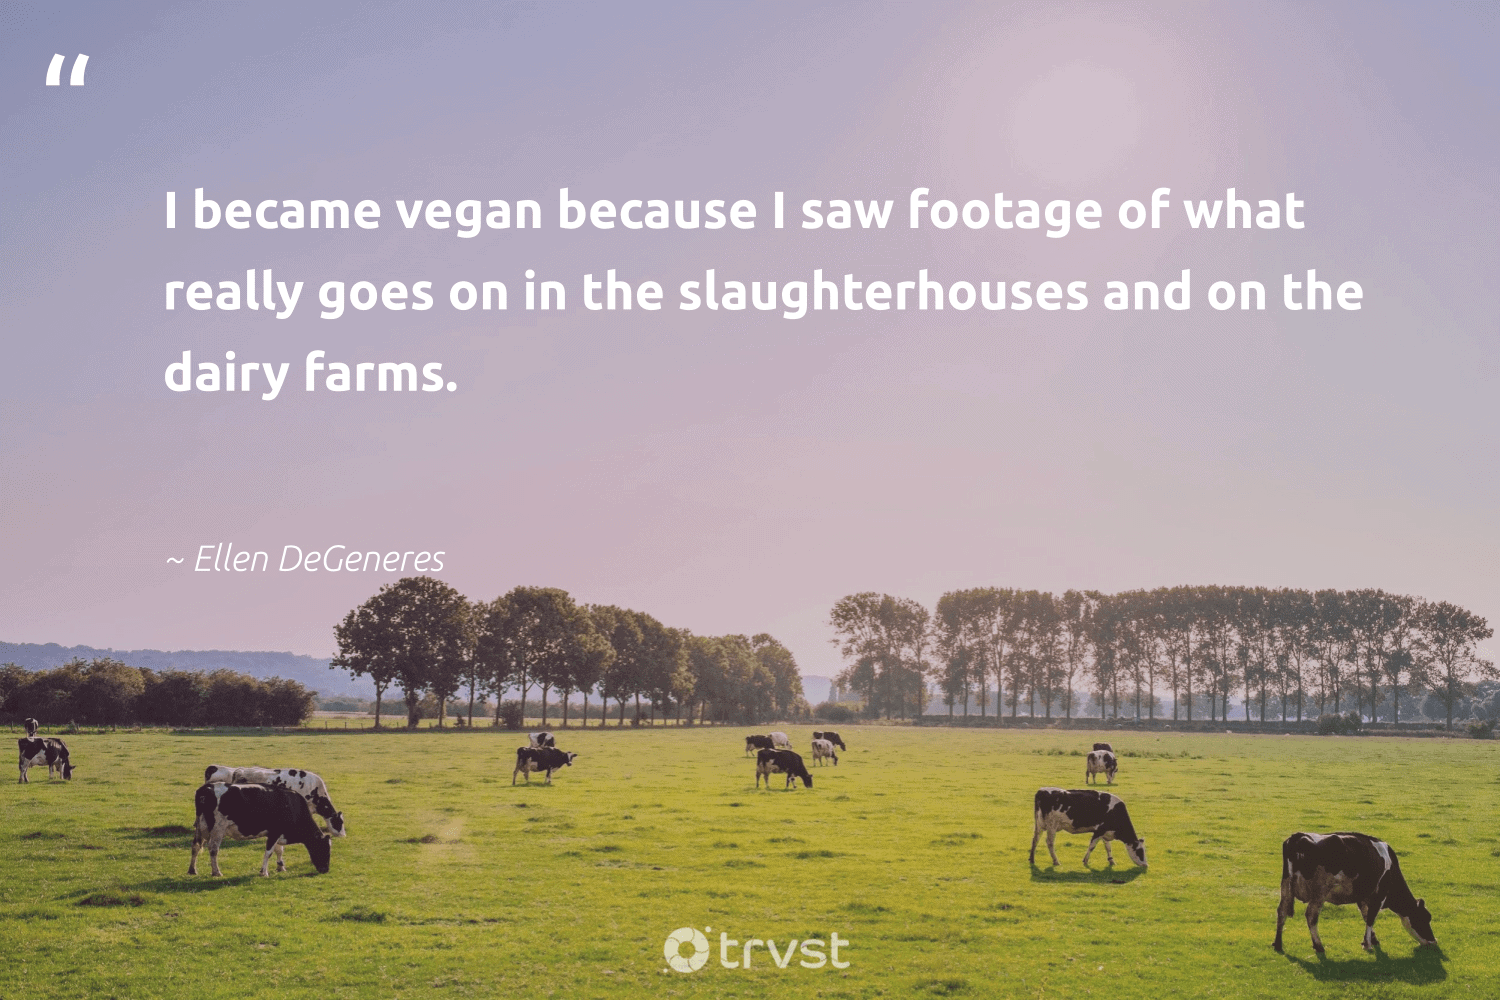 """I became vegan because I saw footage of what really goes on in the slaughterhouses and on the dairy farms.""  - Ellen DeGeneres #trvst #quotes #vegan #govegan #gogreen #sustainable #dogood #plantbased #greenliving #green #changetheworld #veggie"